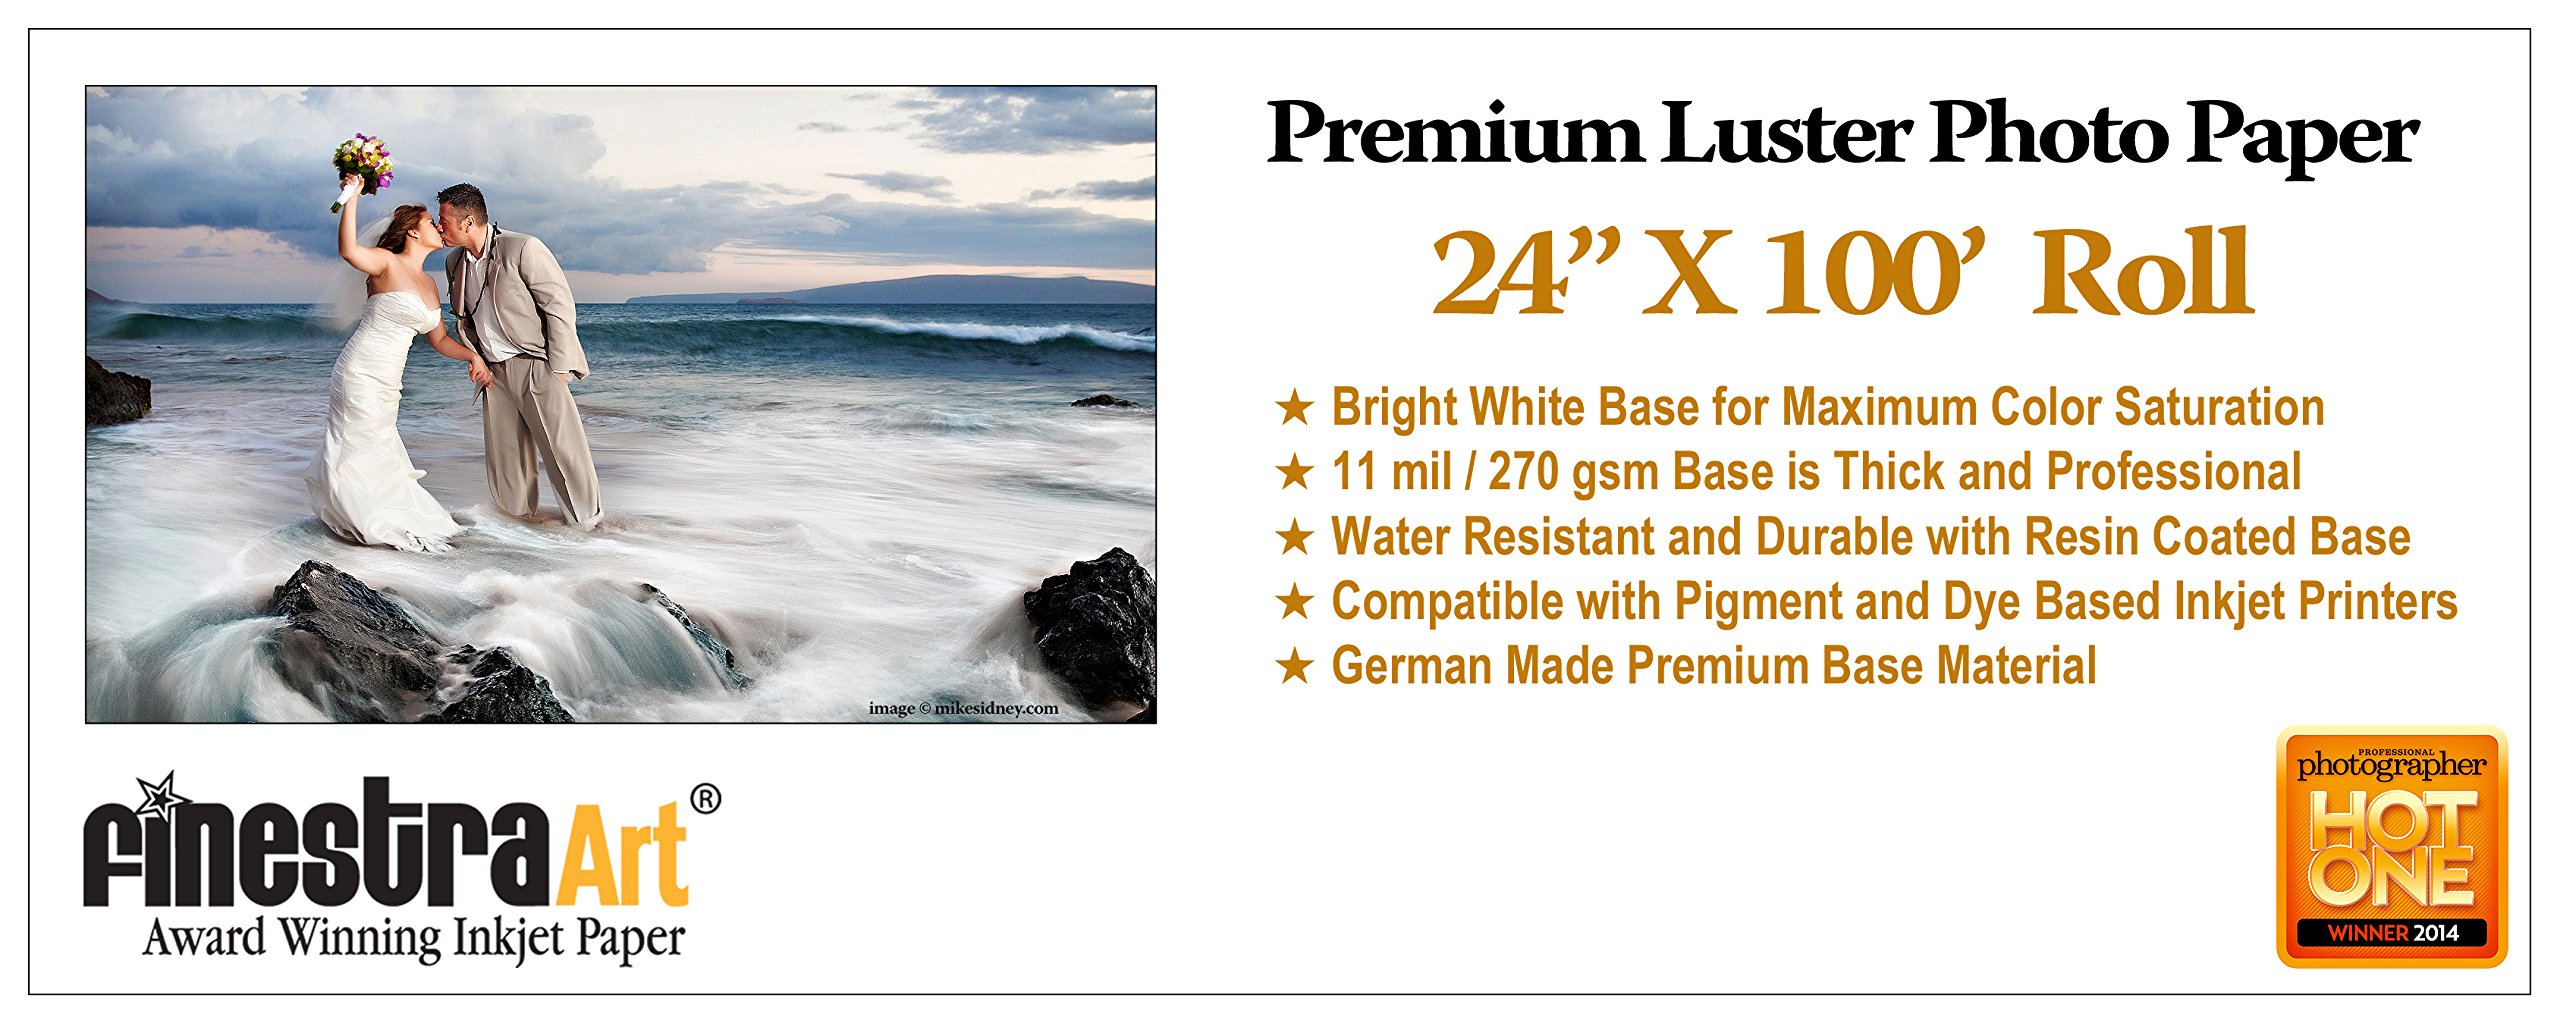 24'' X 100' Roll Premium Luster Inkjet Photo Paper [Office Product]